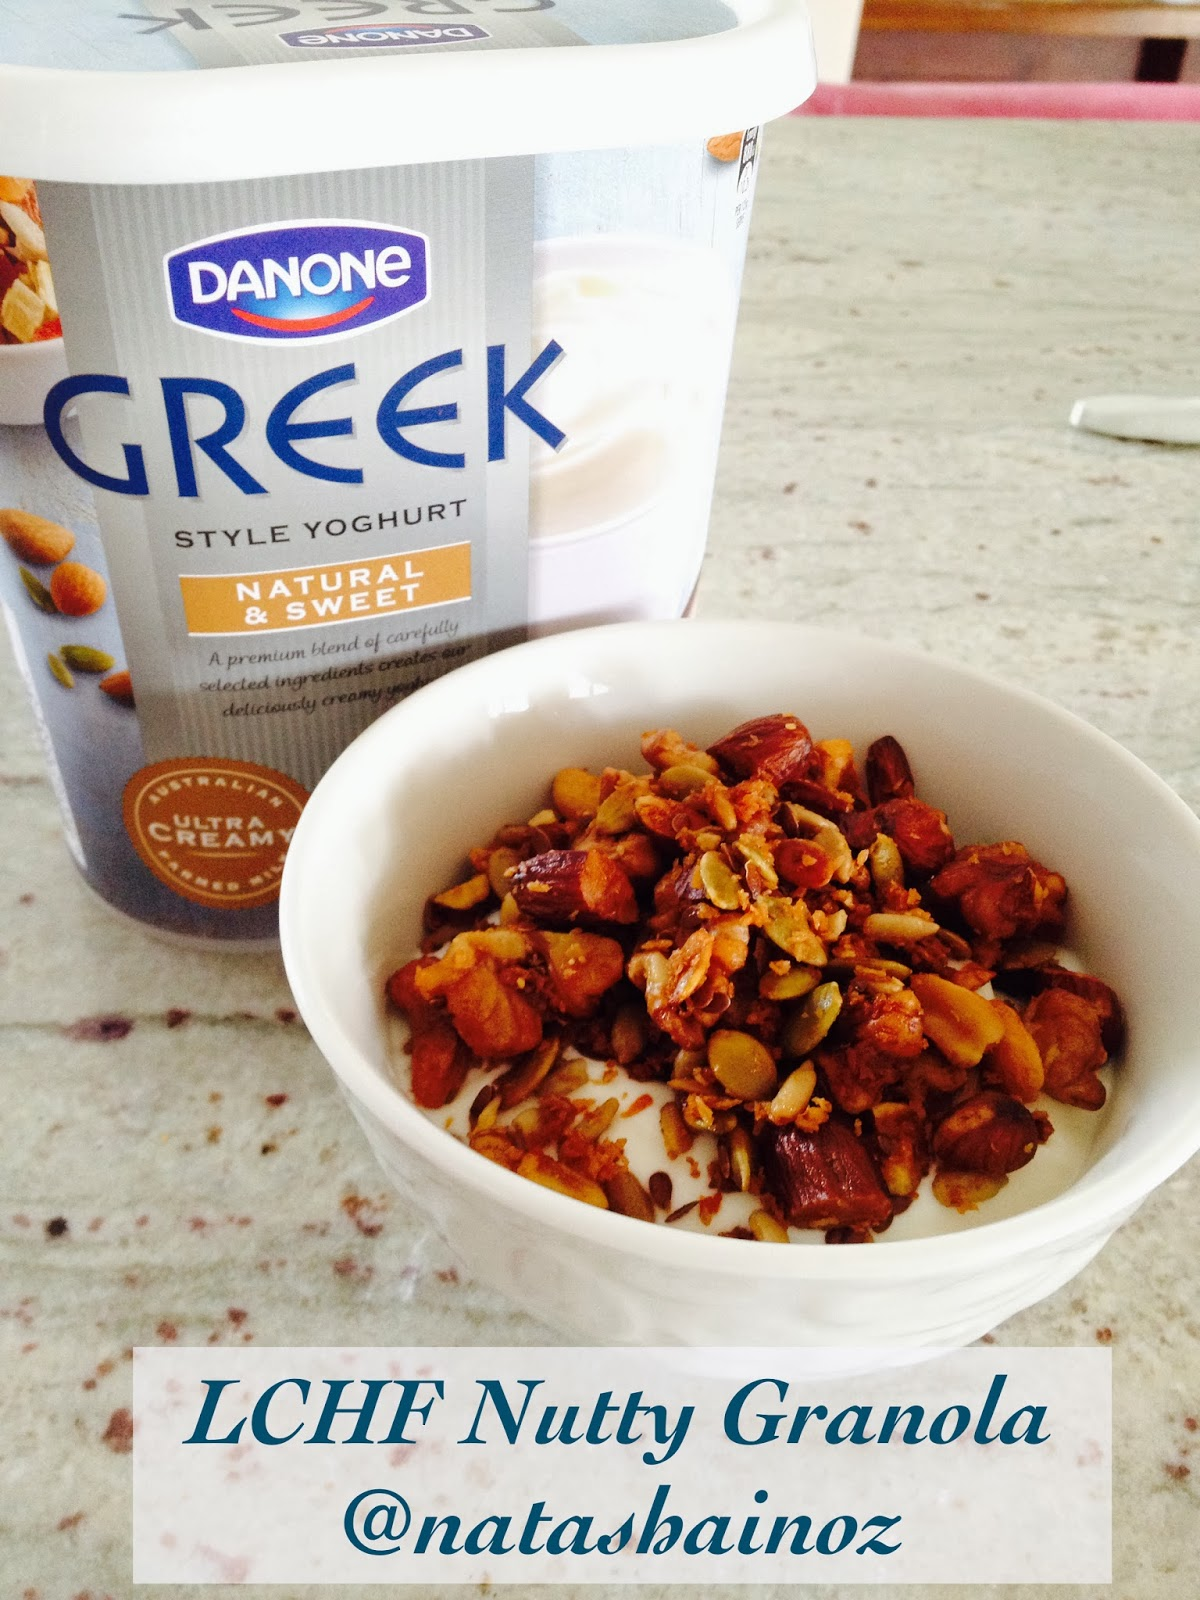 LCHF Nutty Granola Recipe, Natasha in Oz